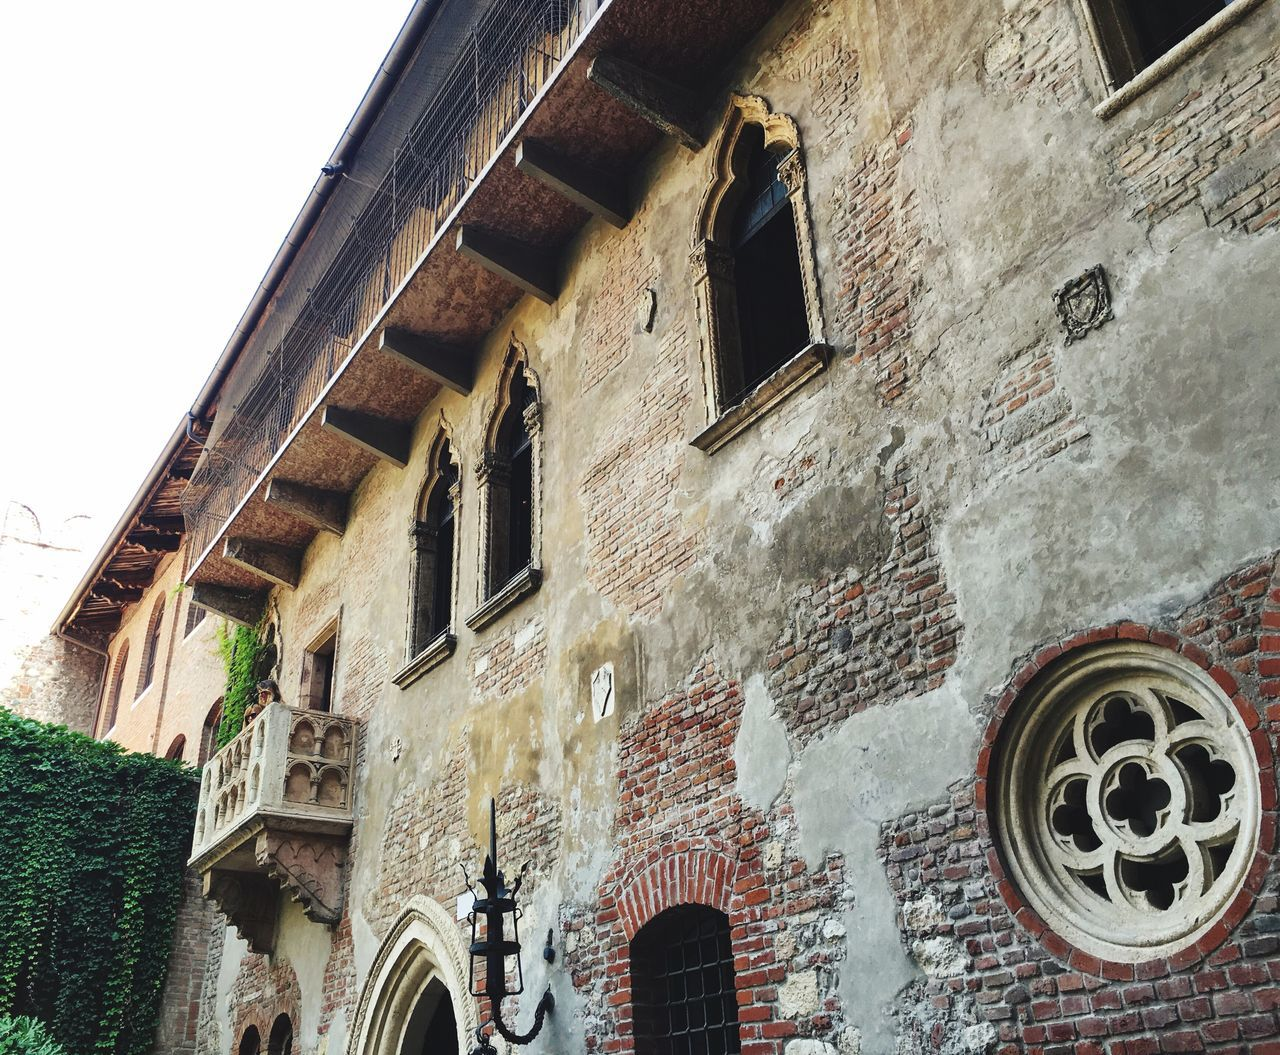 Architecture Built Structure Building Exterior Window Low Angle View Sky Outdoors Day No People Weathered Architectural Feature Verona Juliet Balcony Romeo And Juliet Romantic Landscape Tourism Destination UNESCO World Heritage Site Italy People In Balcony Tourist Tourist Attraction  Travel Destinations Traveling Architecture